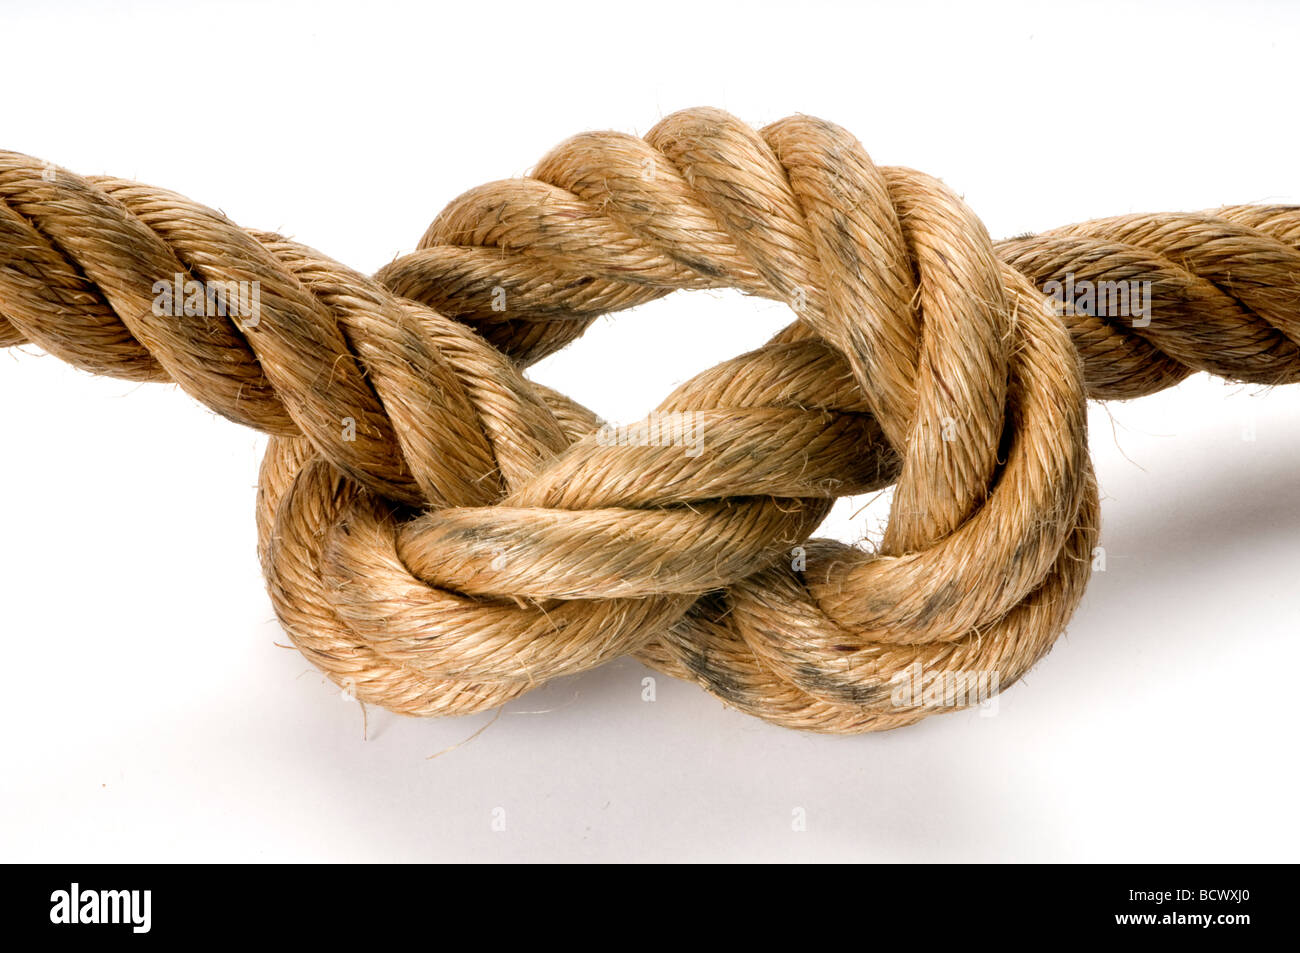 rope tied in knot on white. - Stock Image